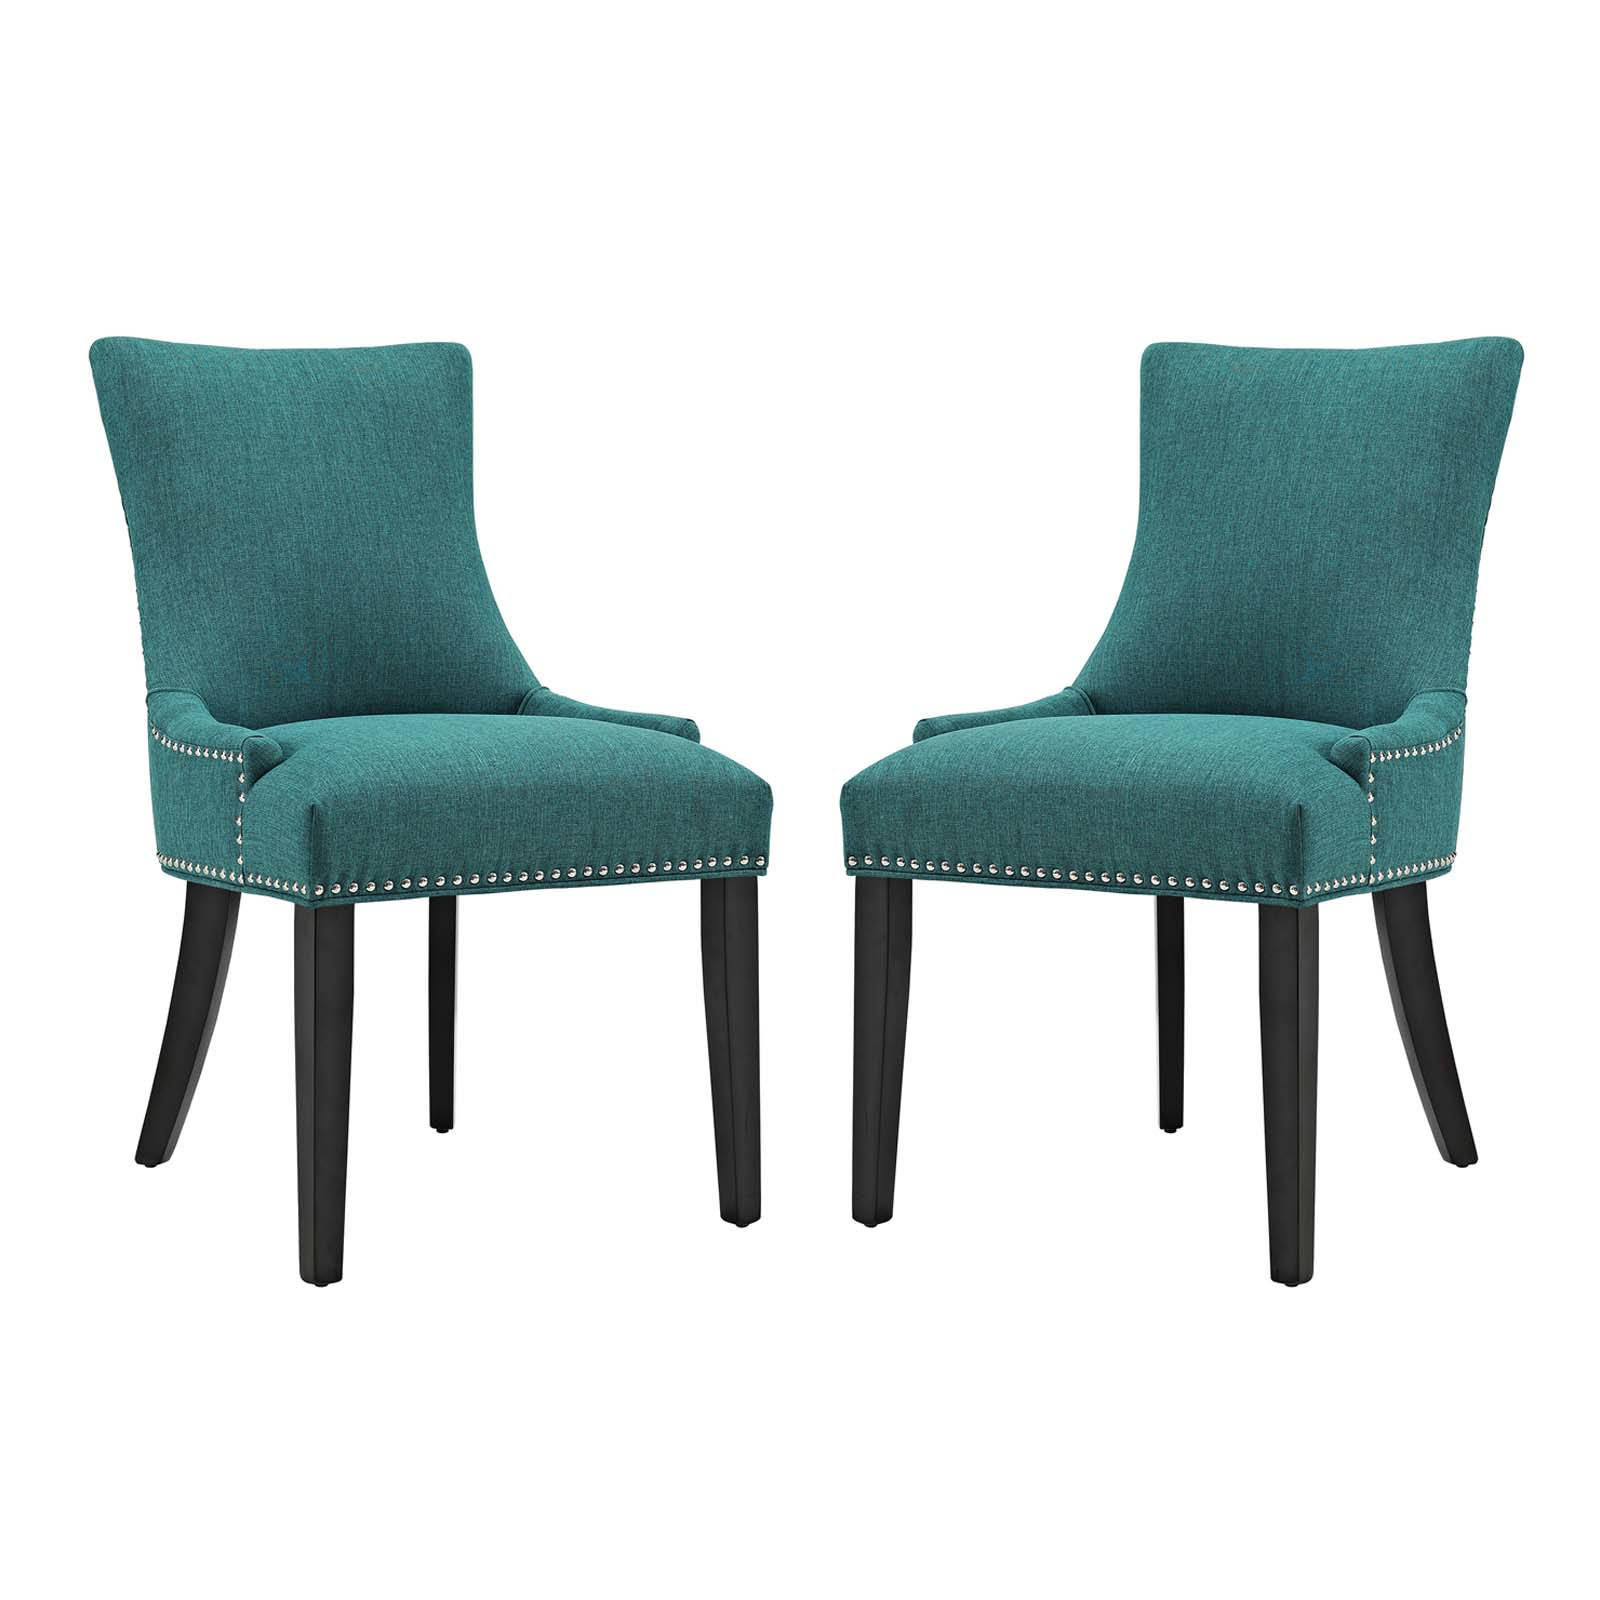 2 Modway Furniture Marquis Teal Dining Side Chairs The Classy Home